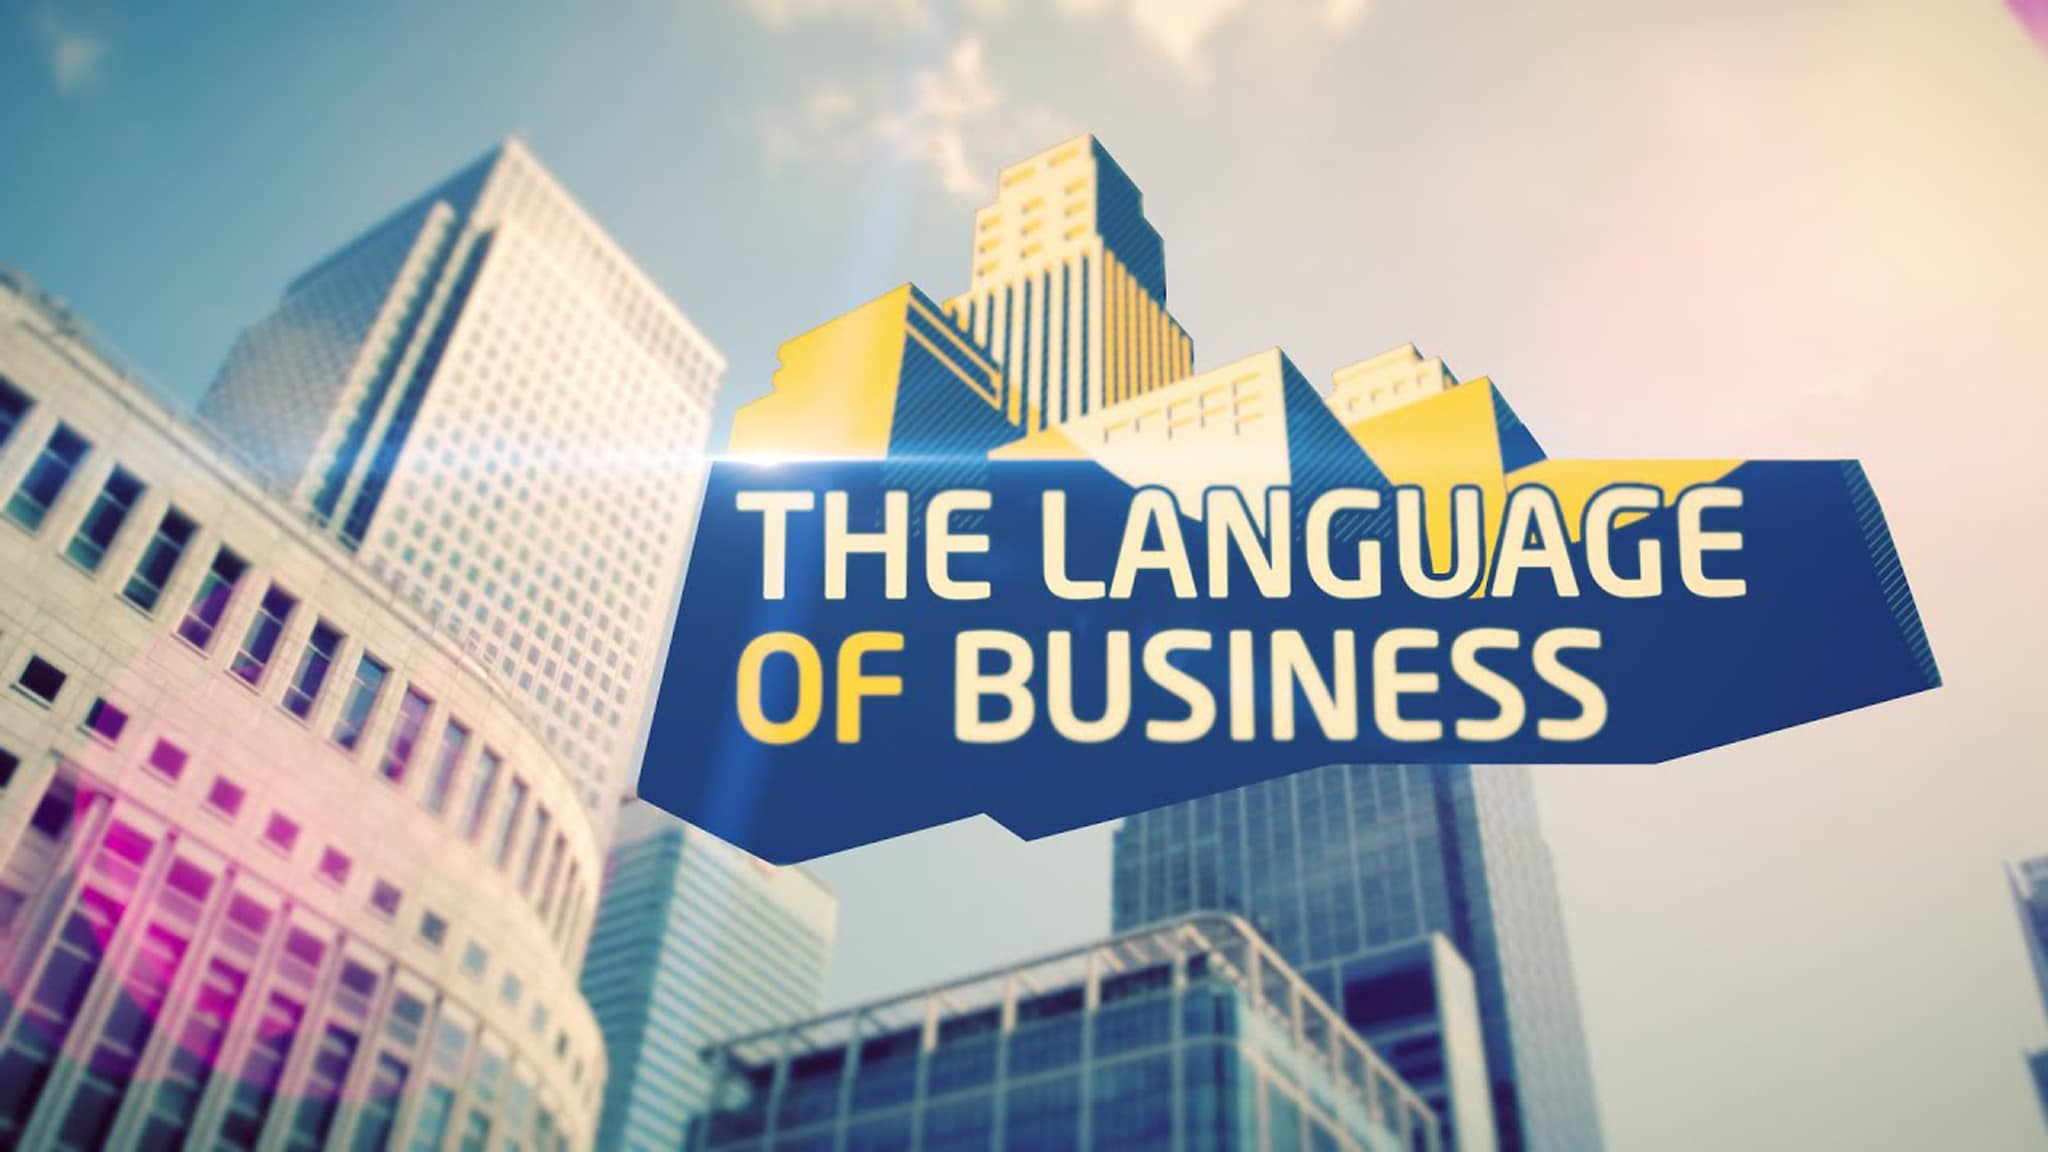 Rai Scuola The Language of Business episodio 15 Replica